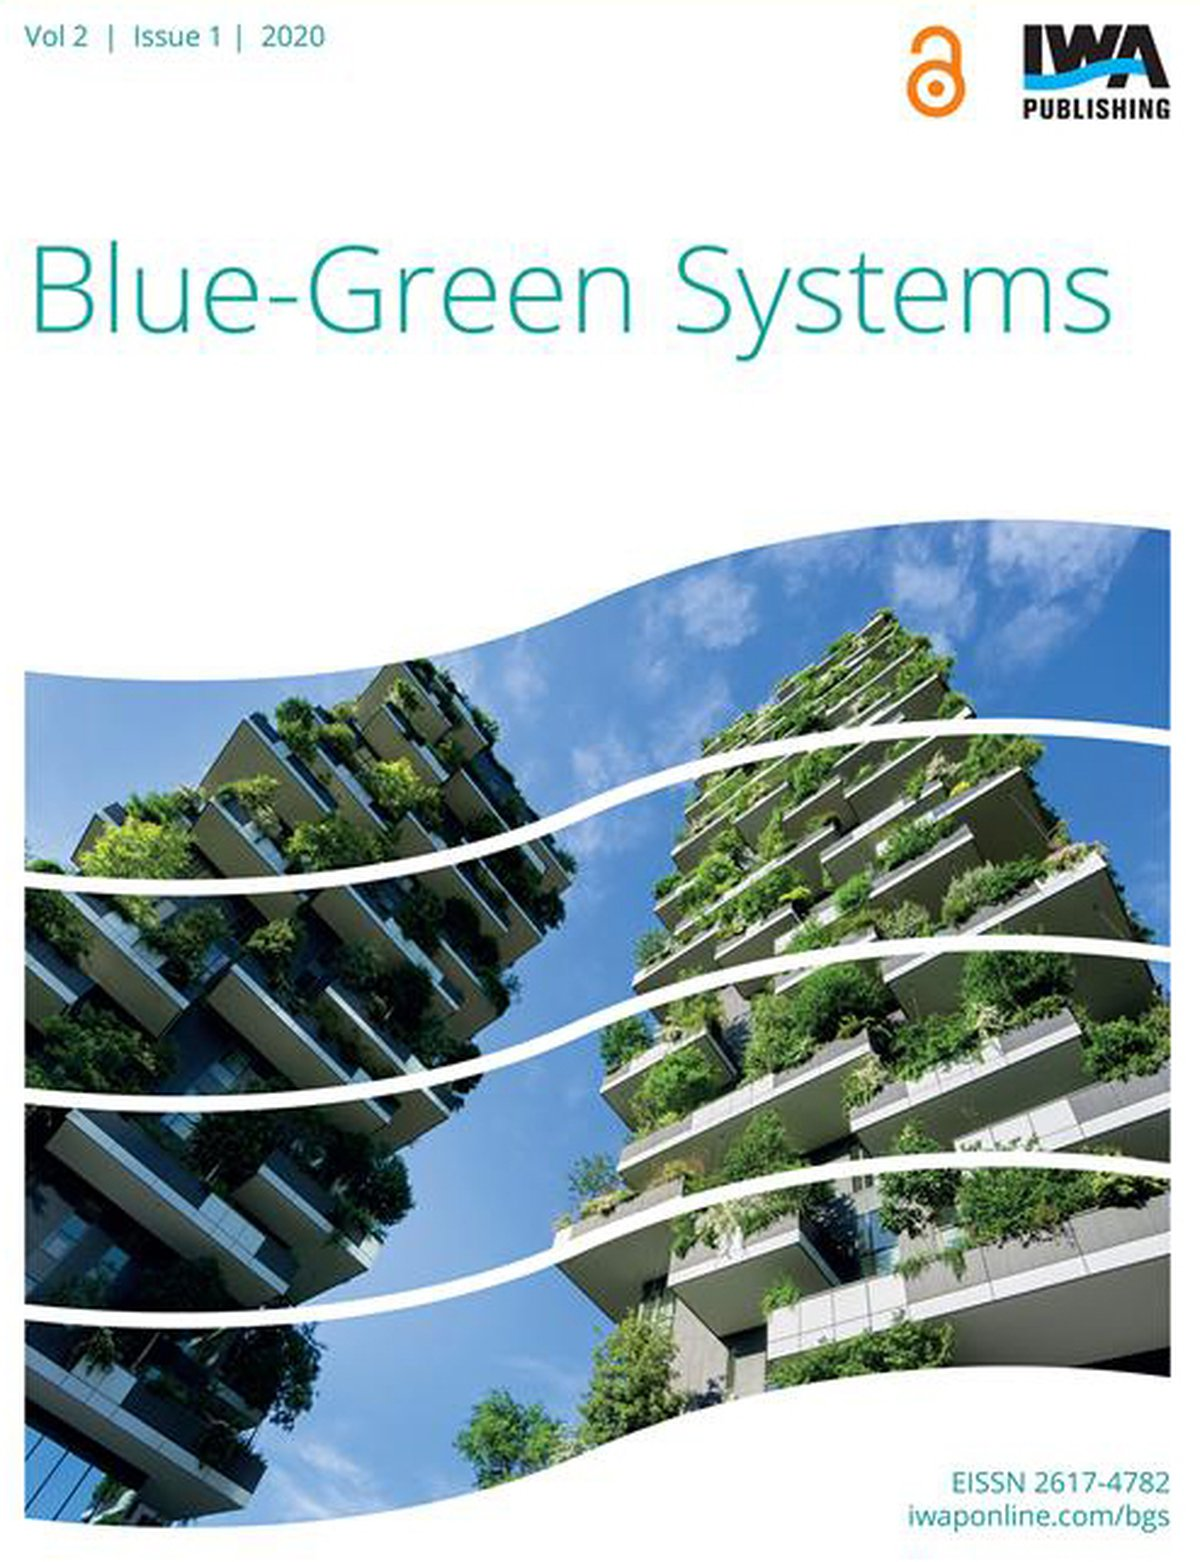 bluegreensystems-2-1cover-www-e-16279.jpg